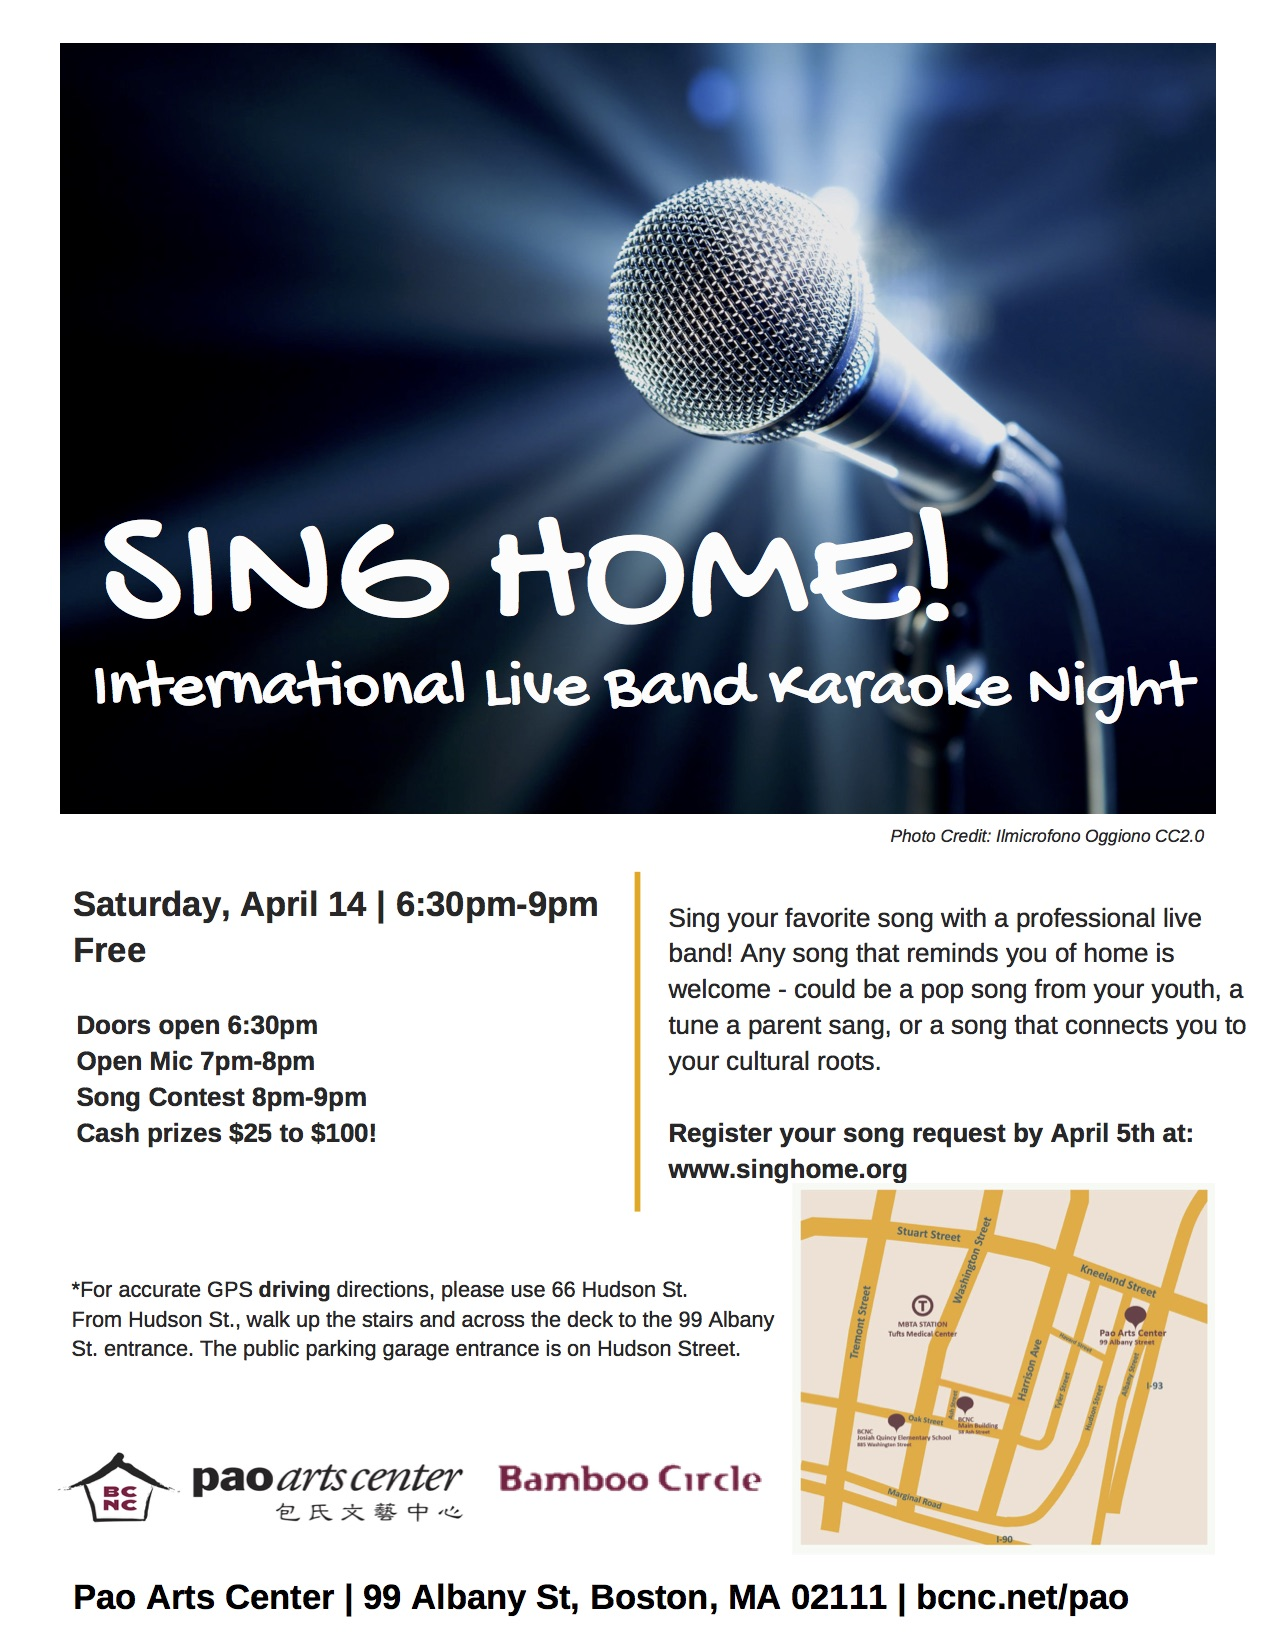 Art Garage Open Mic Sing Home International Live Band Karaoke Night 04 14 18